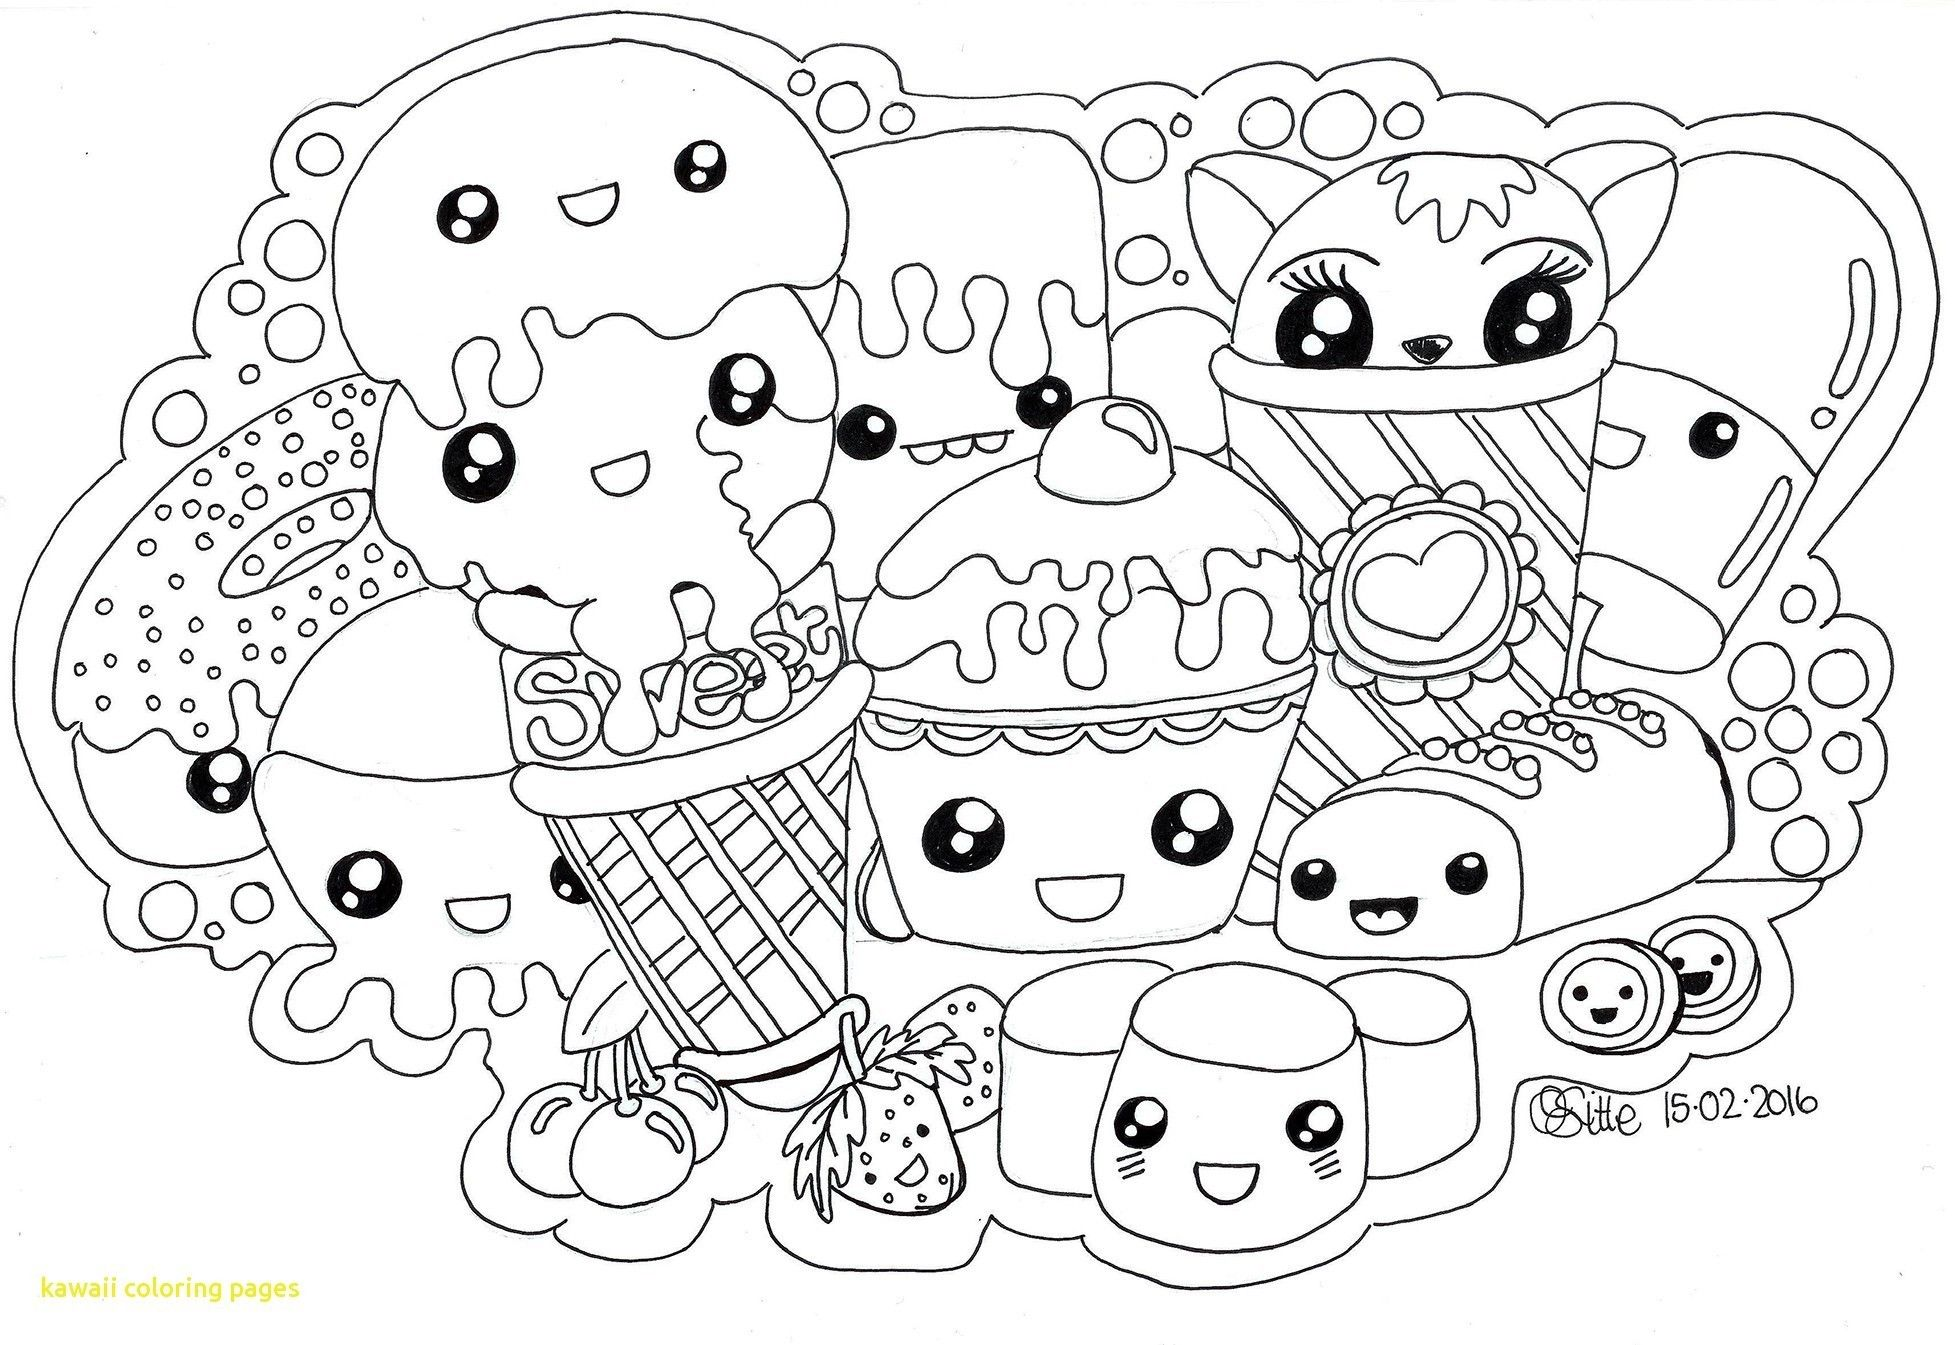 Collection of Free kawaii coloring pages | Download them ...